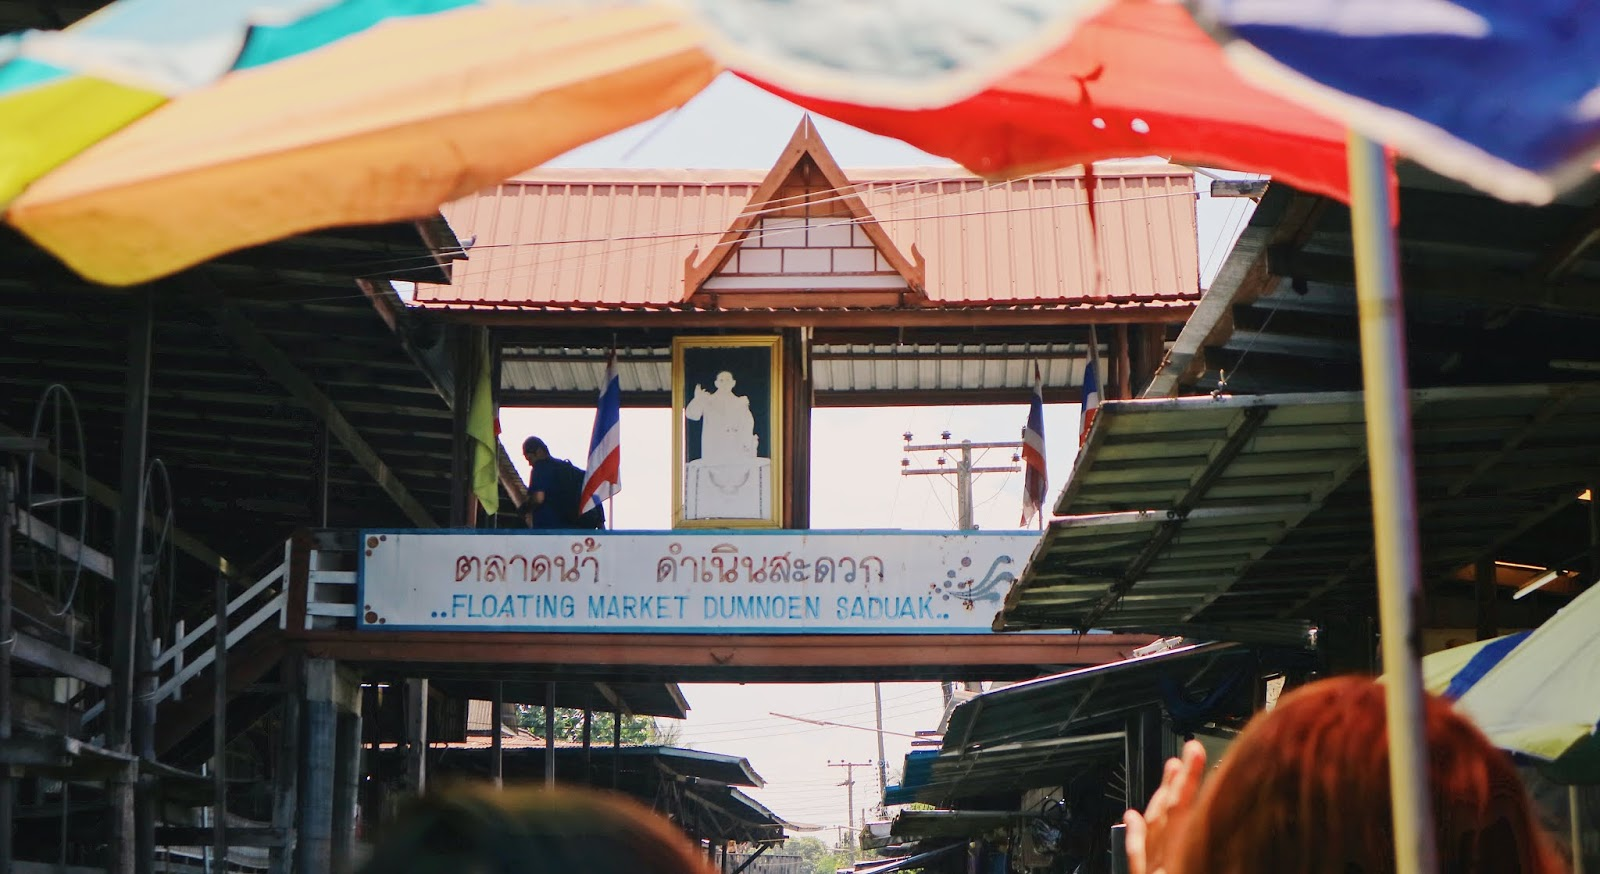 Floating market sign